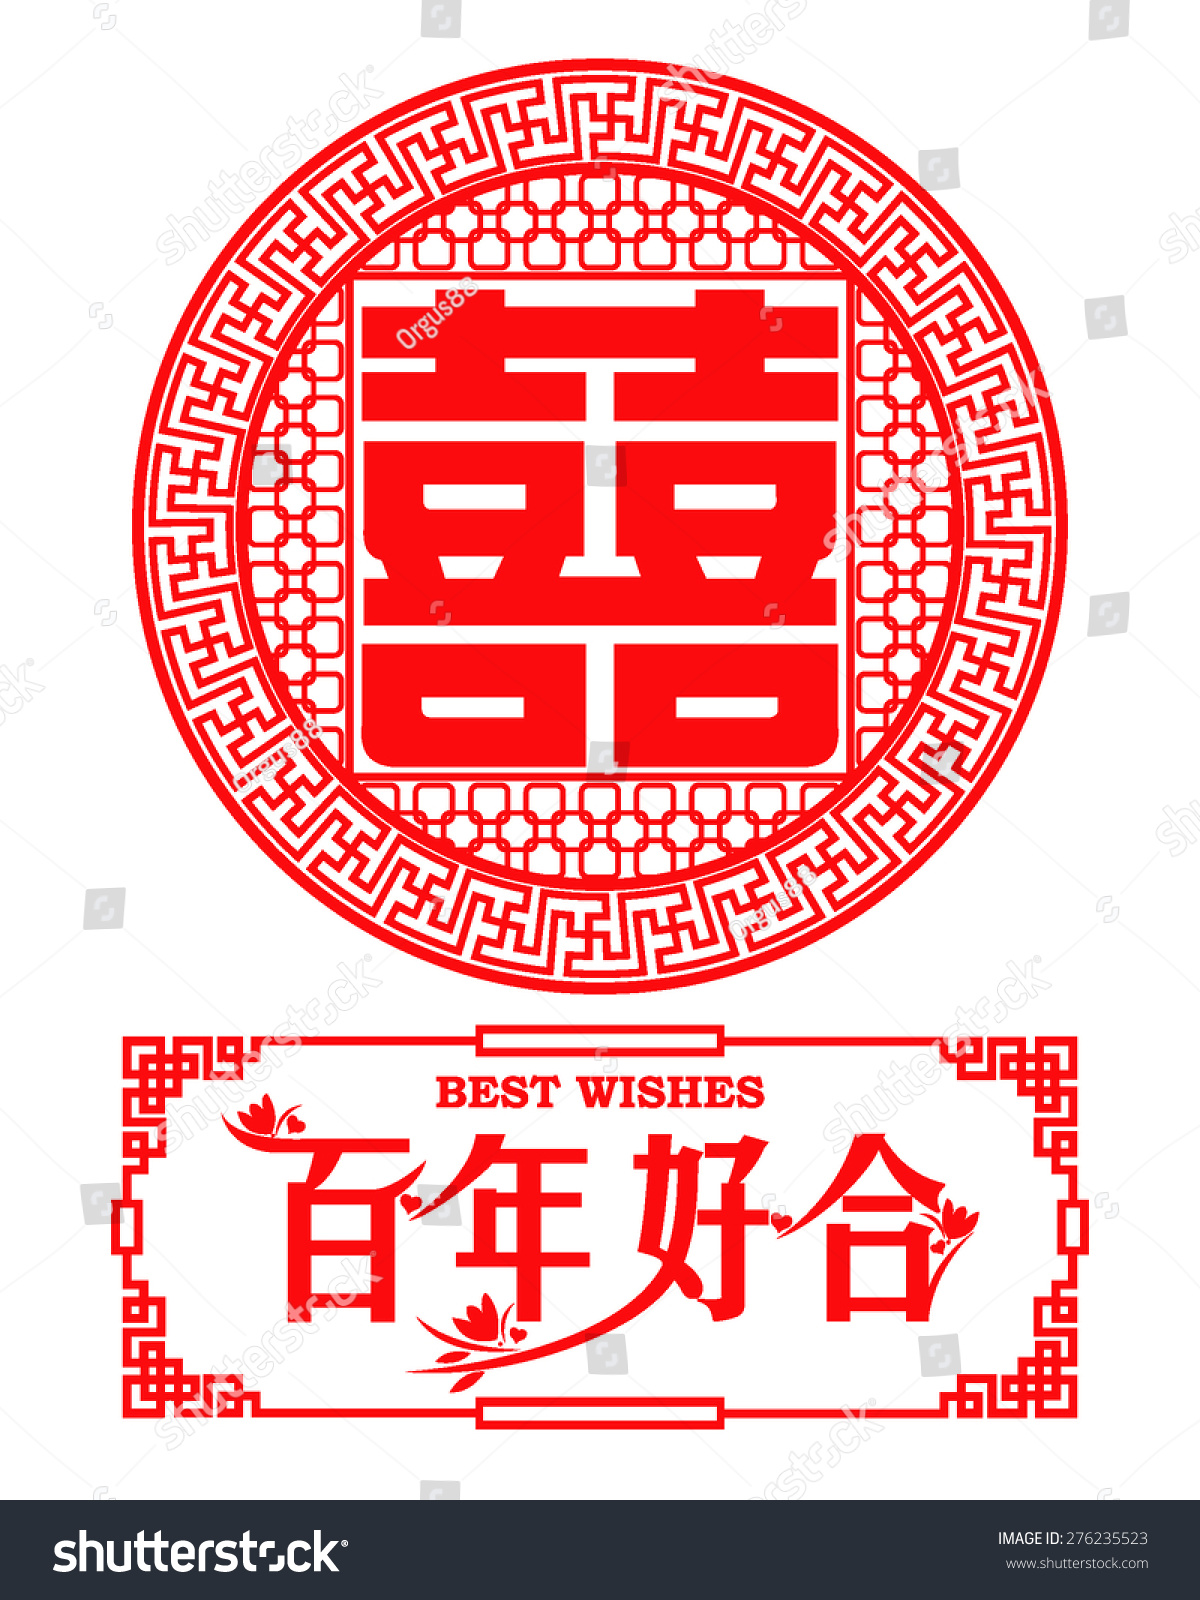 Royalty Free Chinese Symbol Of Double Happiness And 276235523